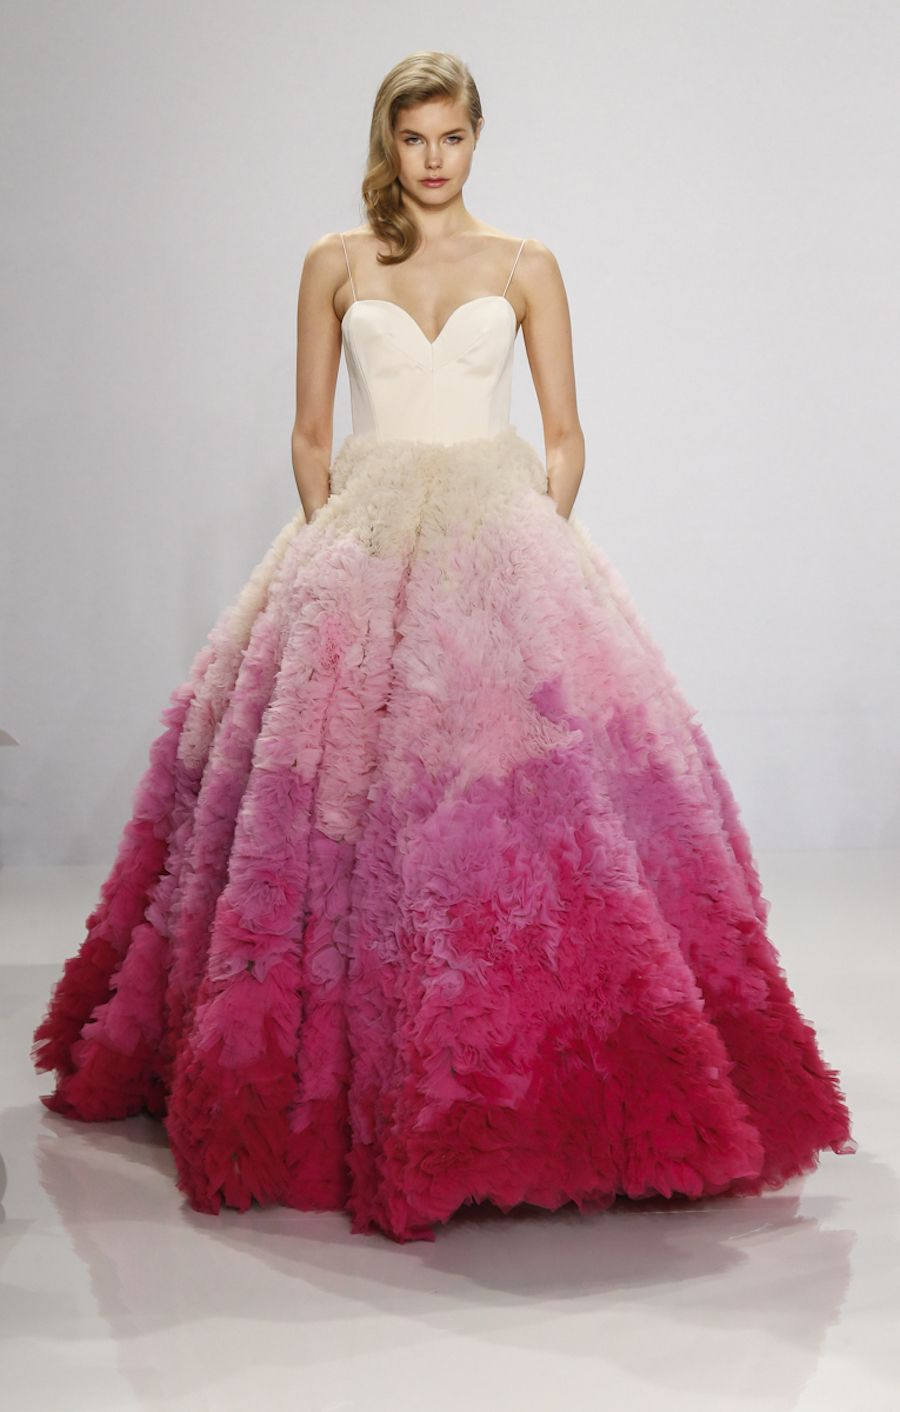 Ombre pink beauty from christian siriano for kleinfeld